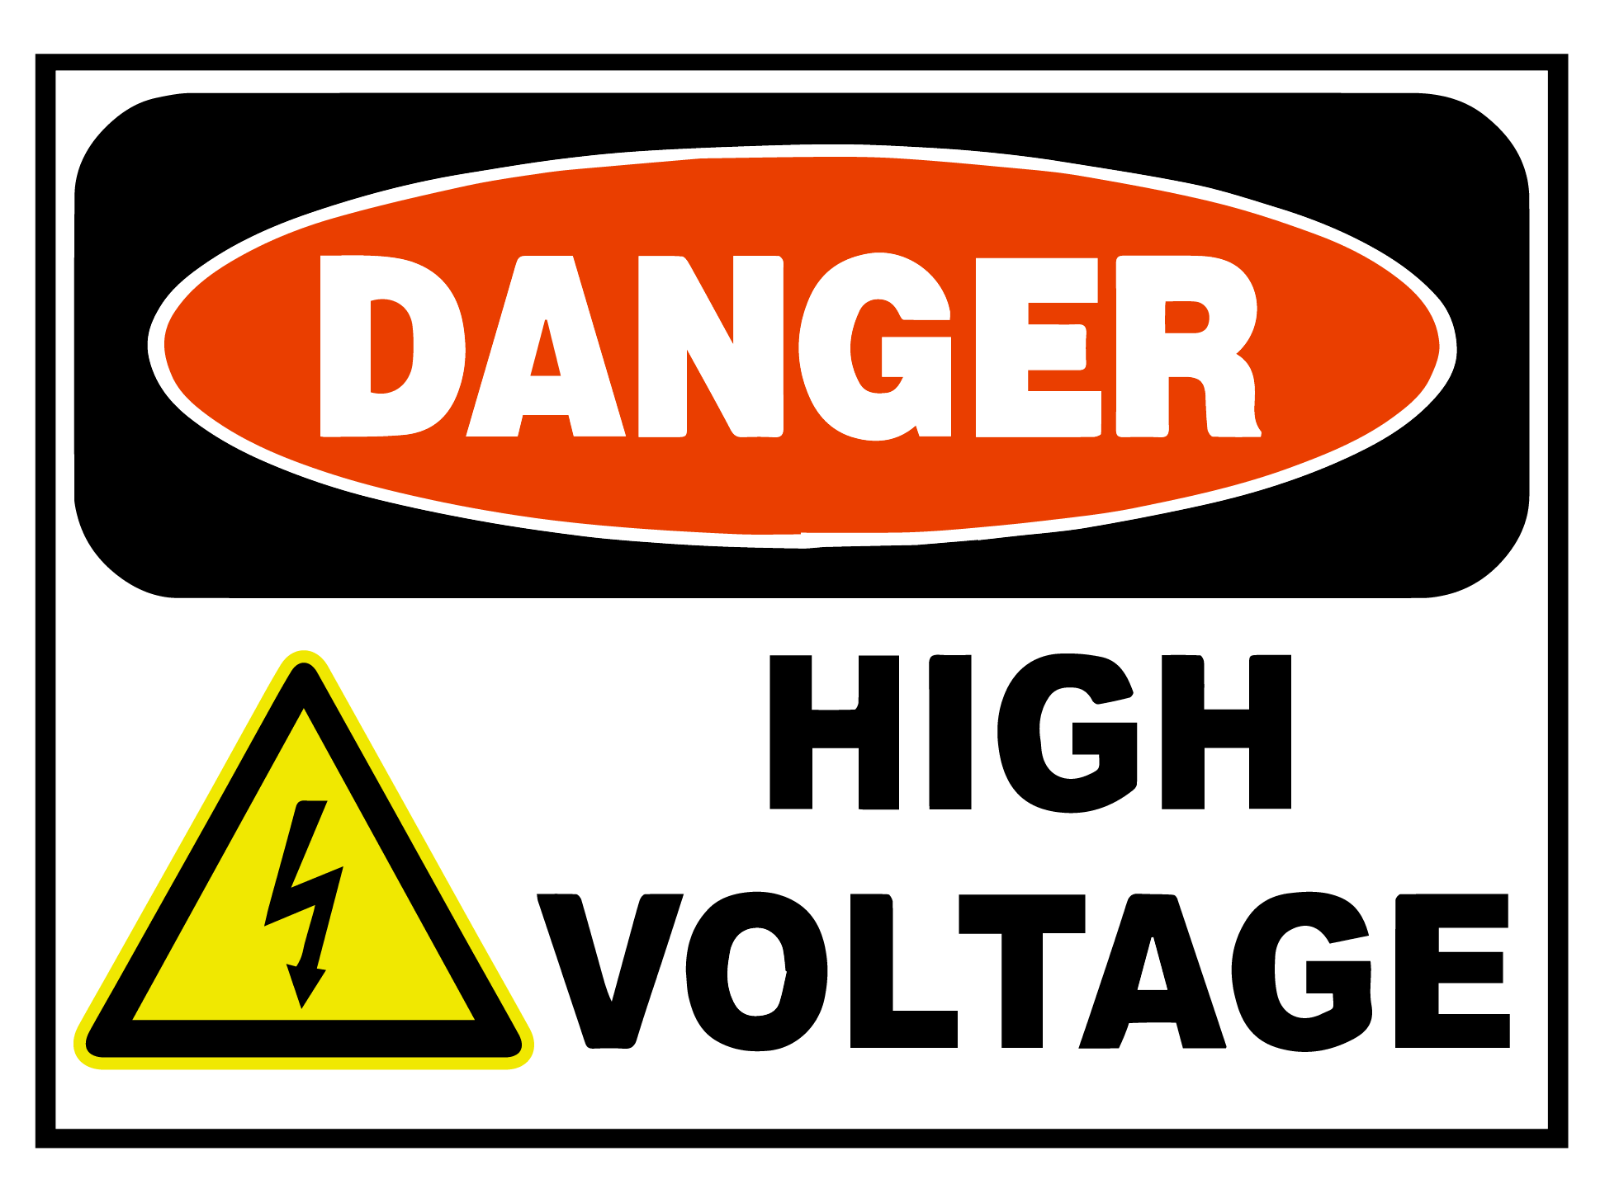 Decals Sticker Danger High Voltage Peligro Alto Voltaje car st7 X8977